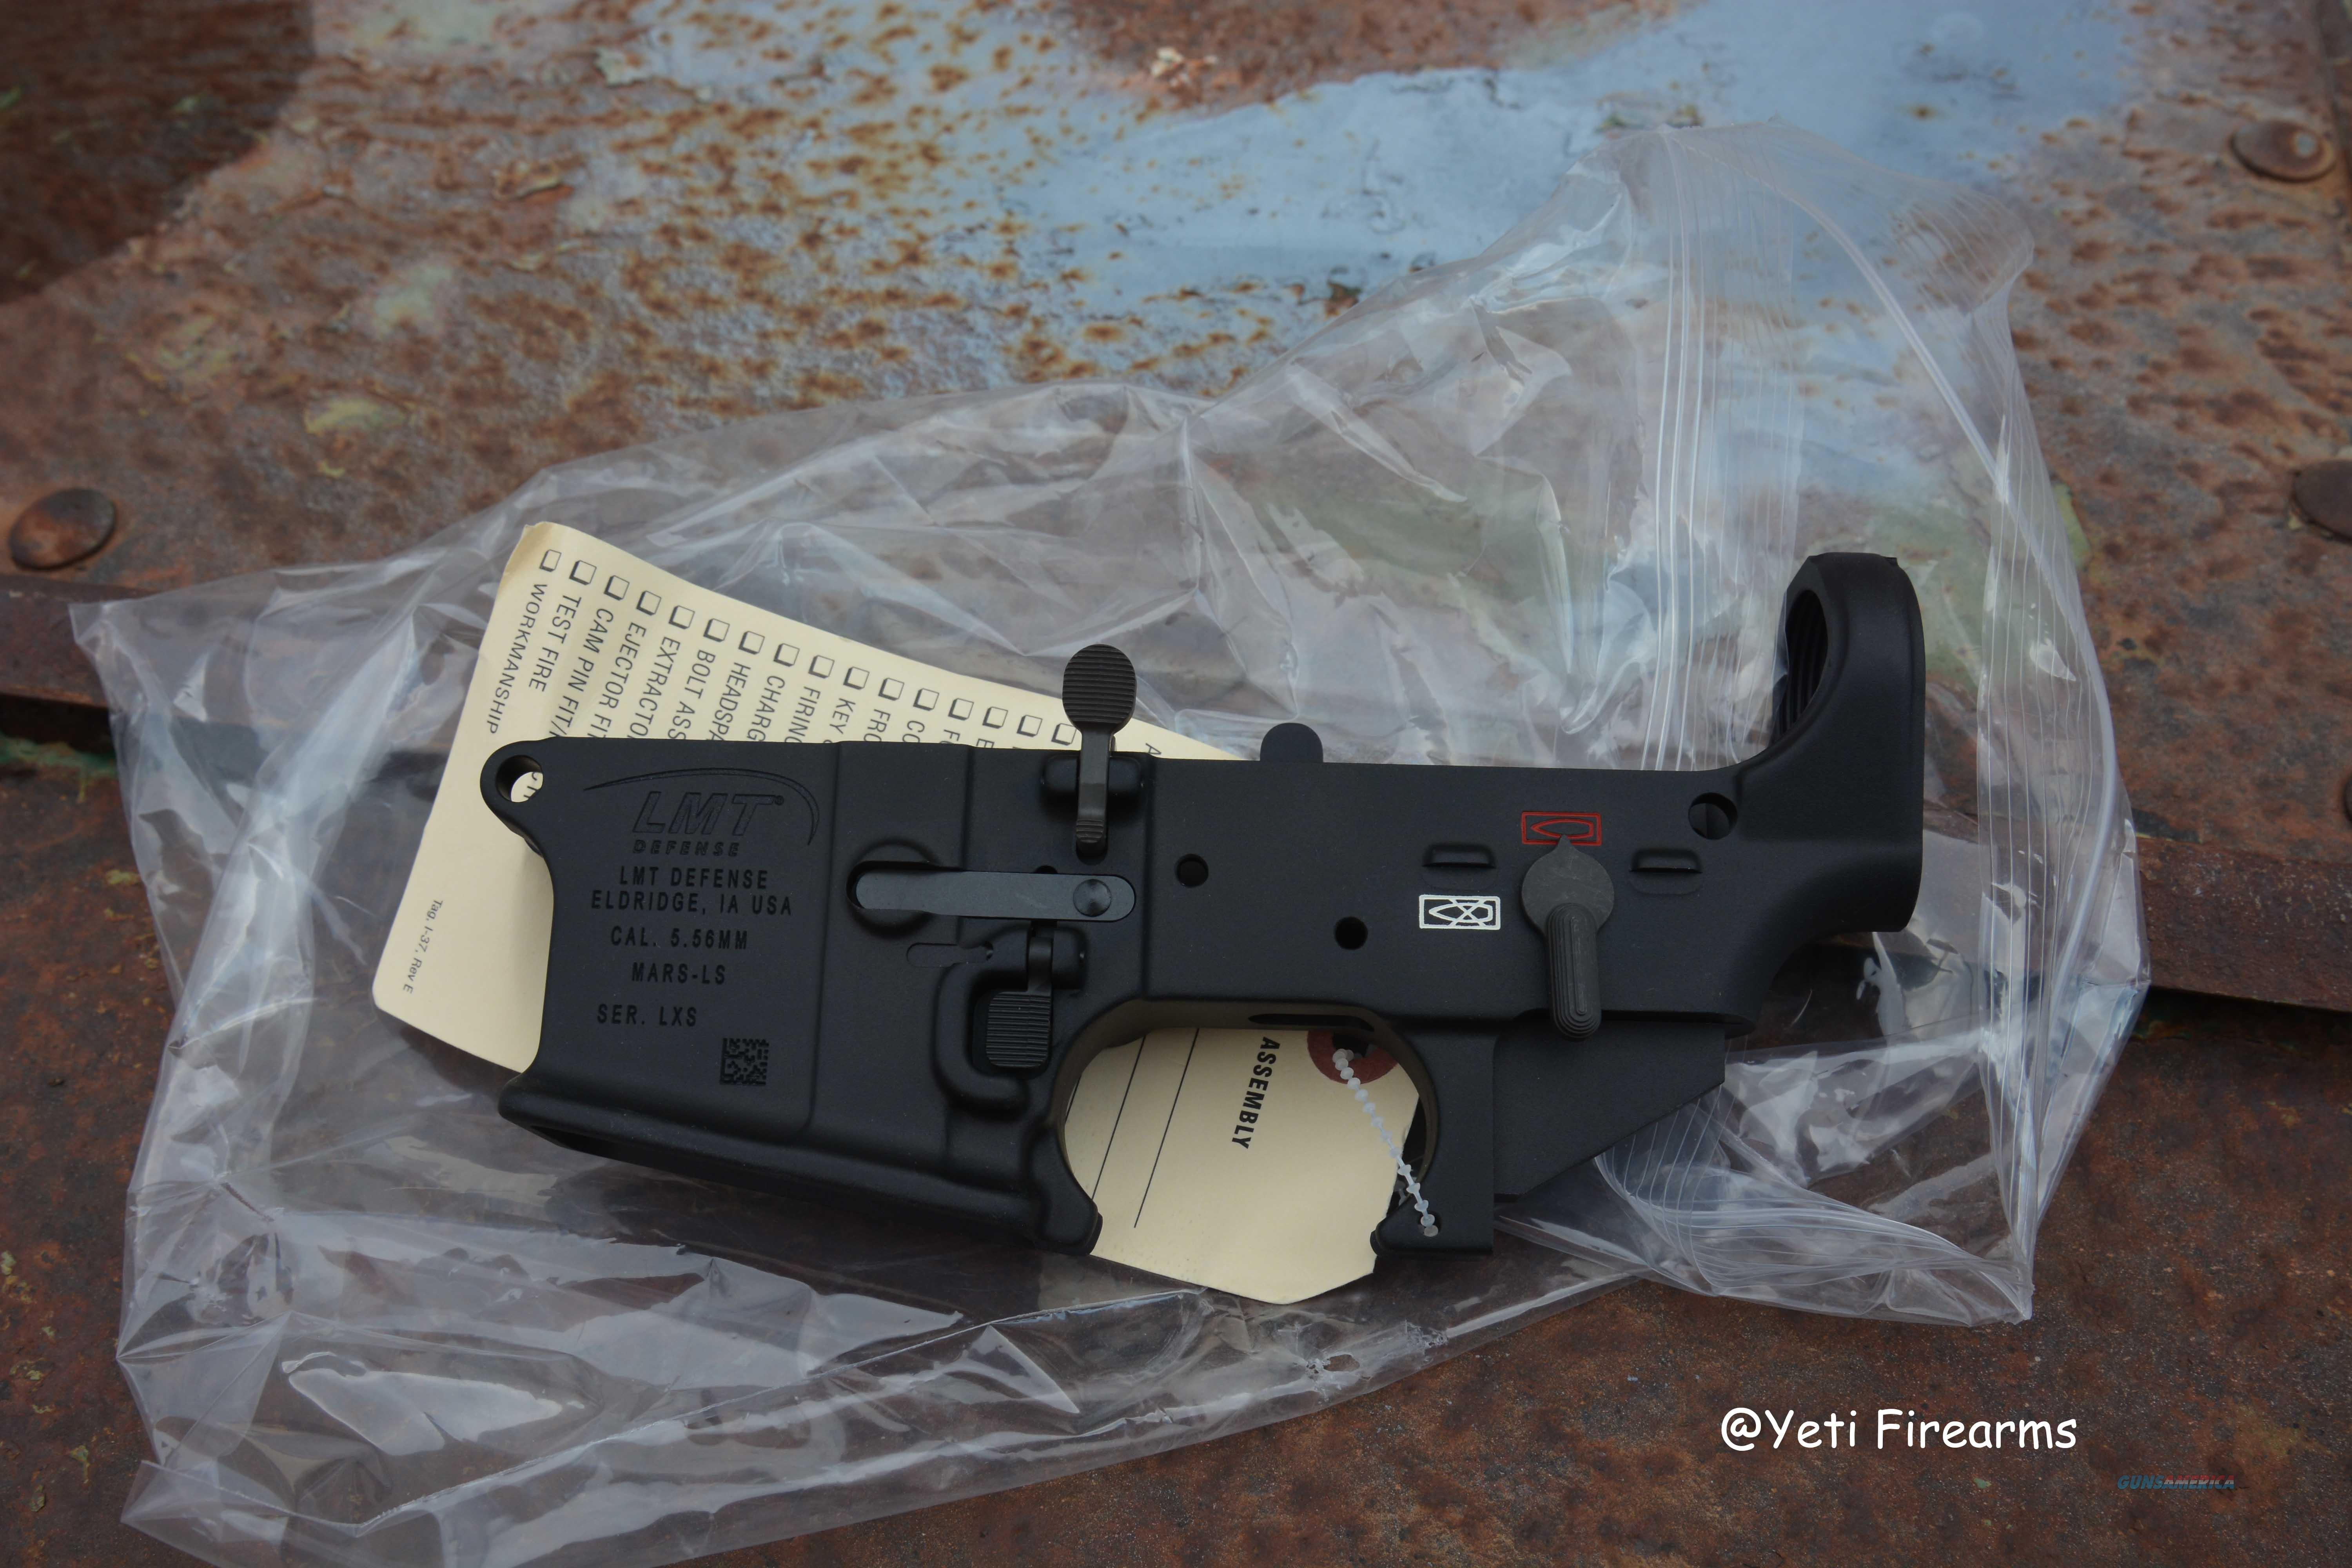 Lewis Stripped MARS-L AR-15 Lower M7SL LMT 5.56  Guns > Rifles > AR-15 Rifles - Small Manufacturers > Lower Only